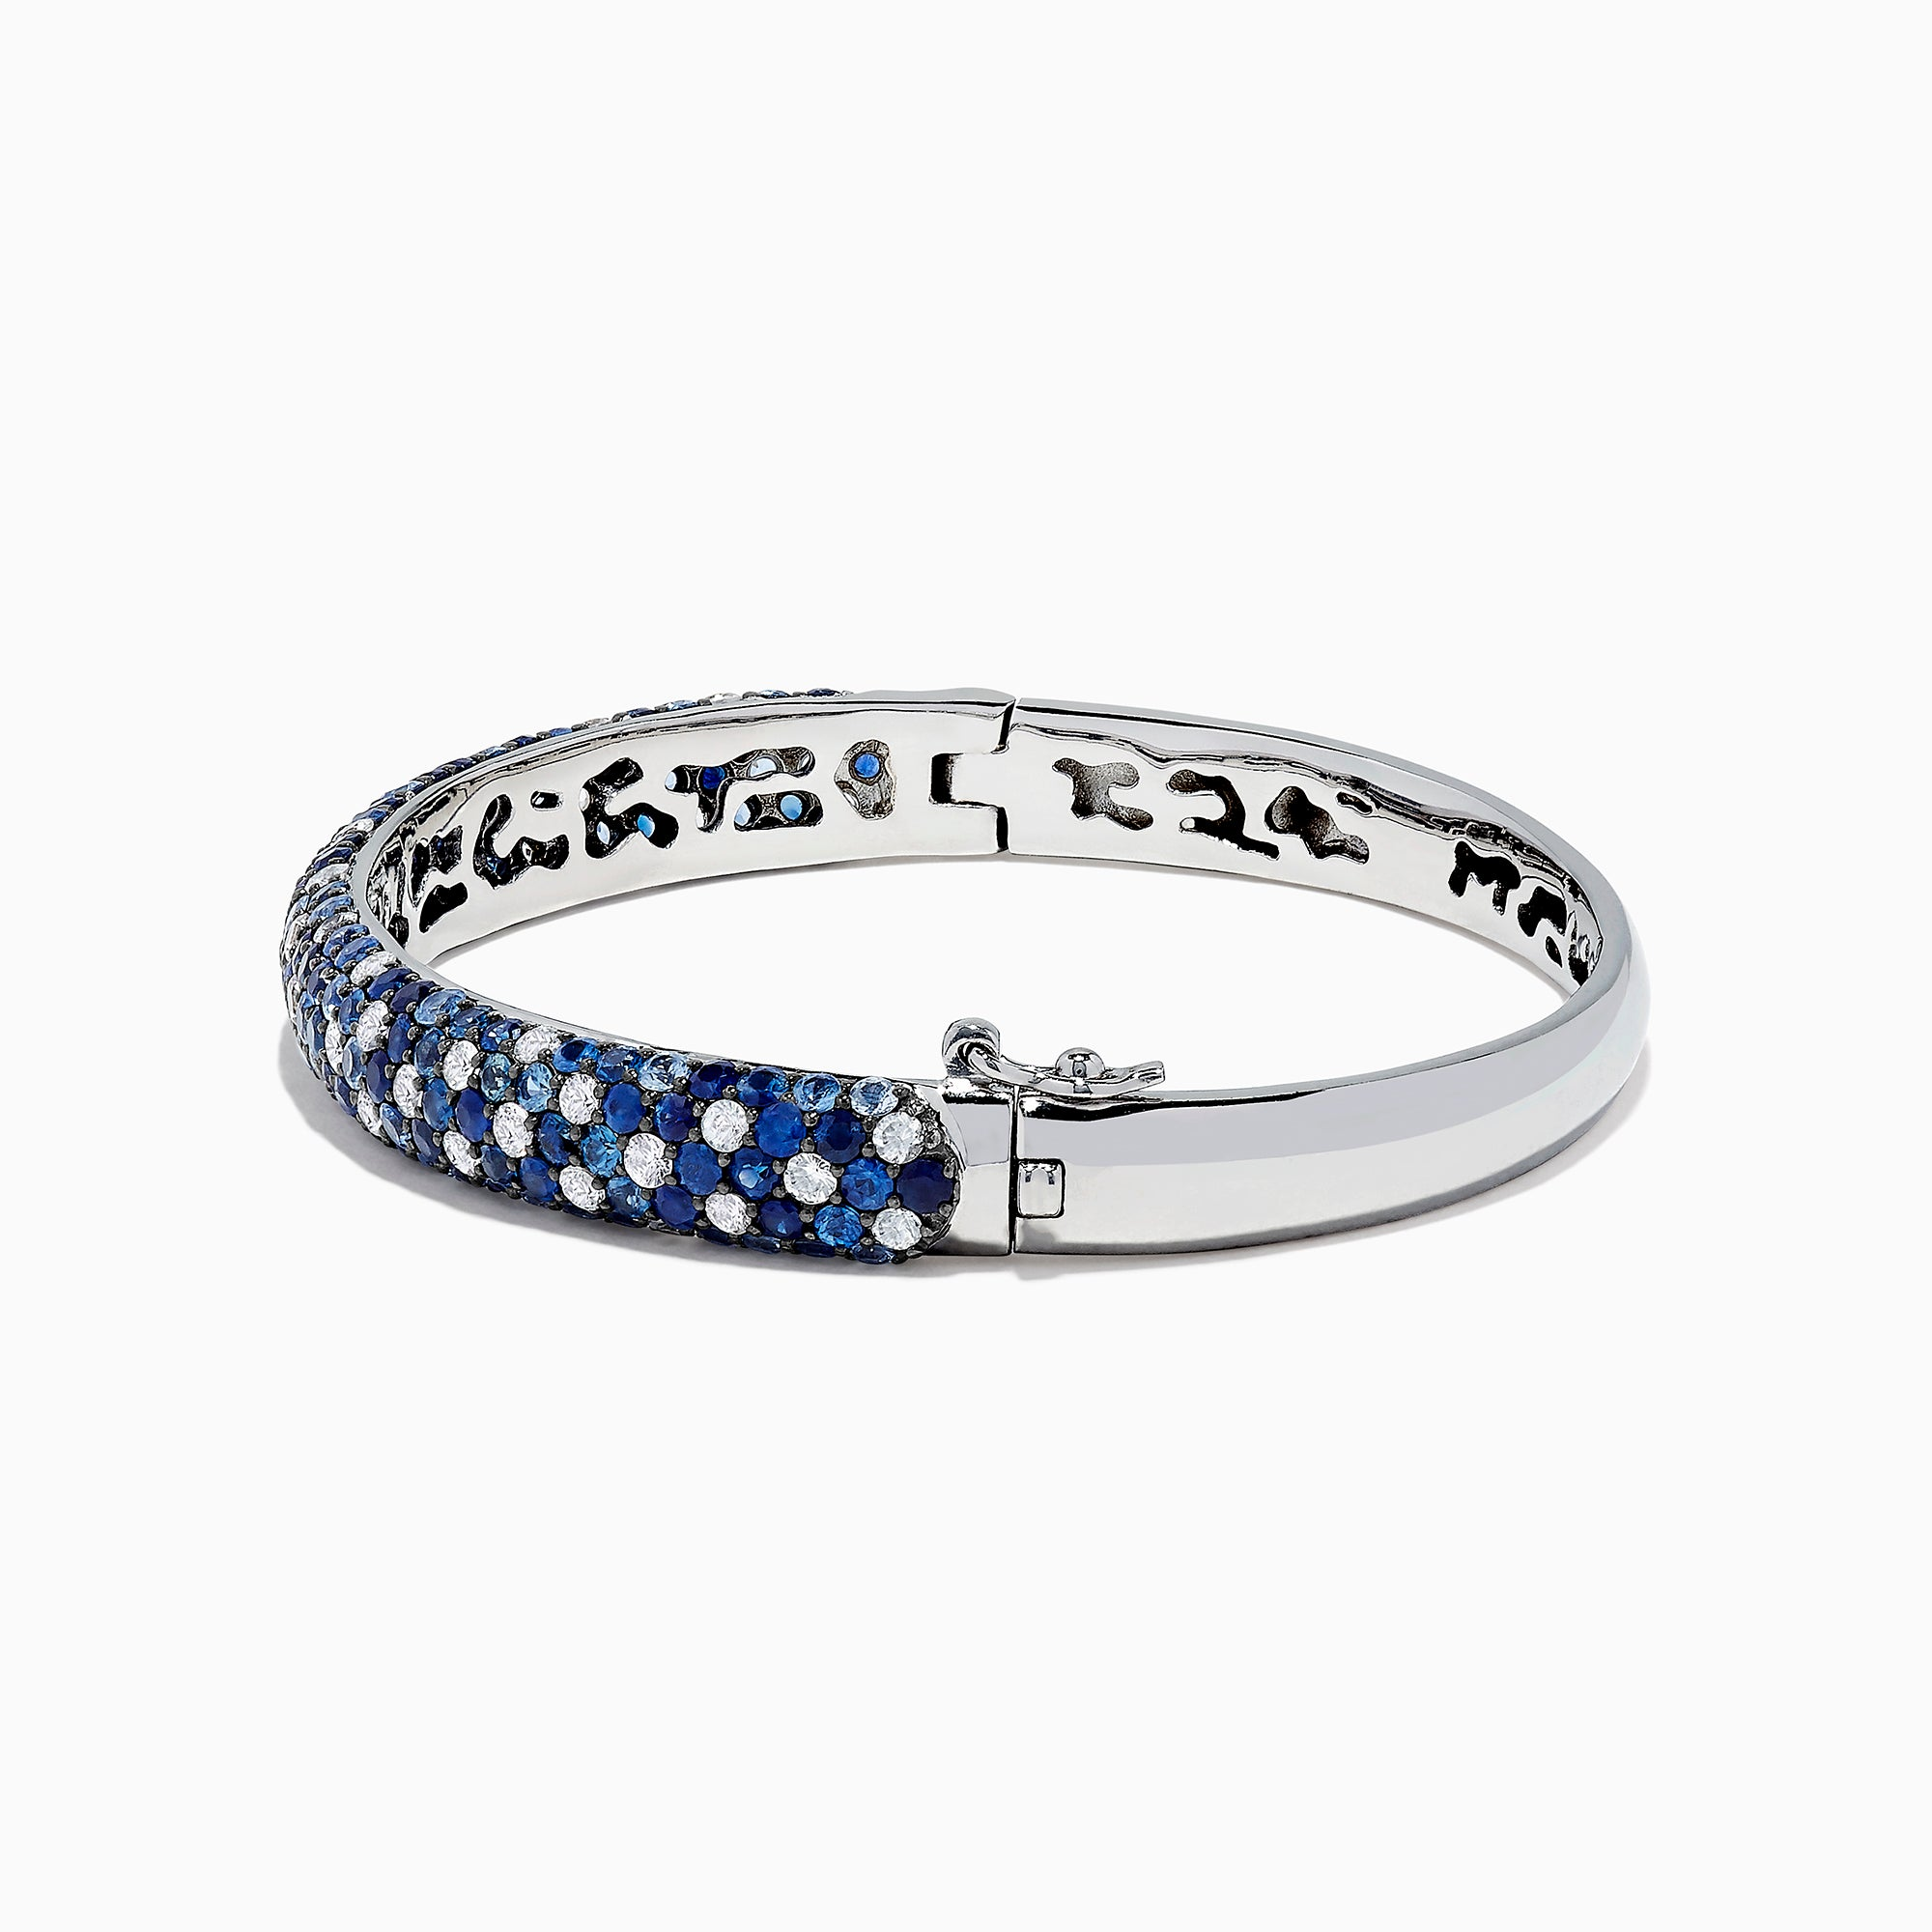 Effy 925 Sterling Silver Blue and White Sapphire Splash Bangle, 9.93 TCW